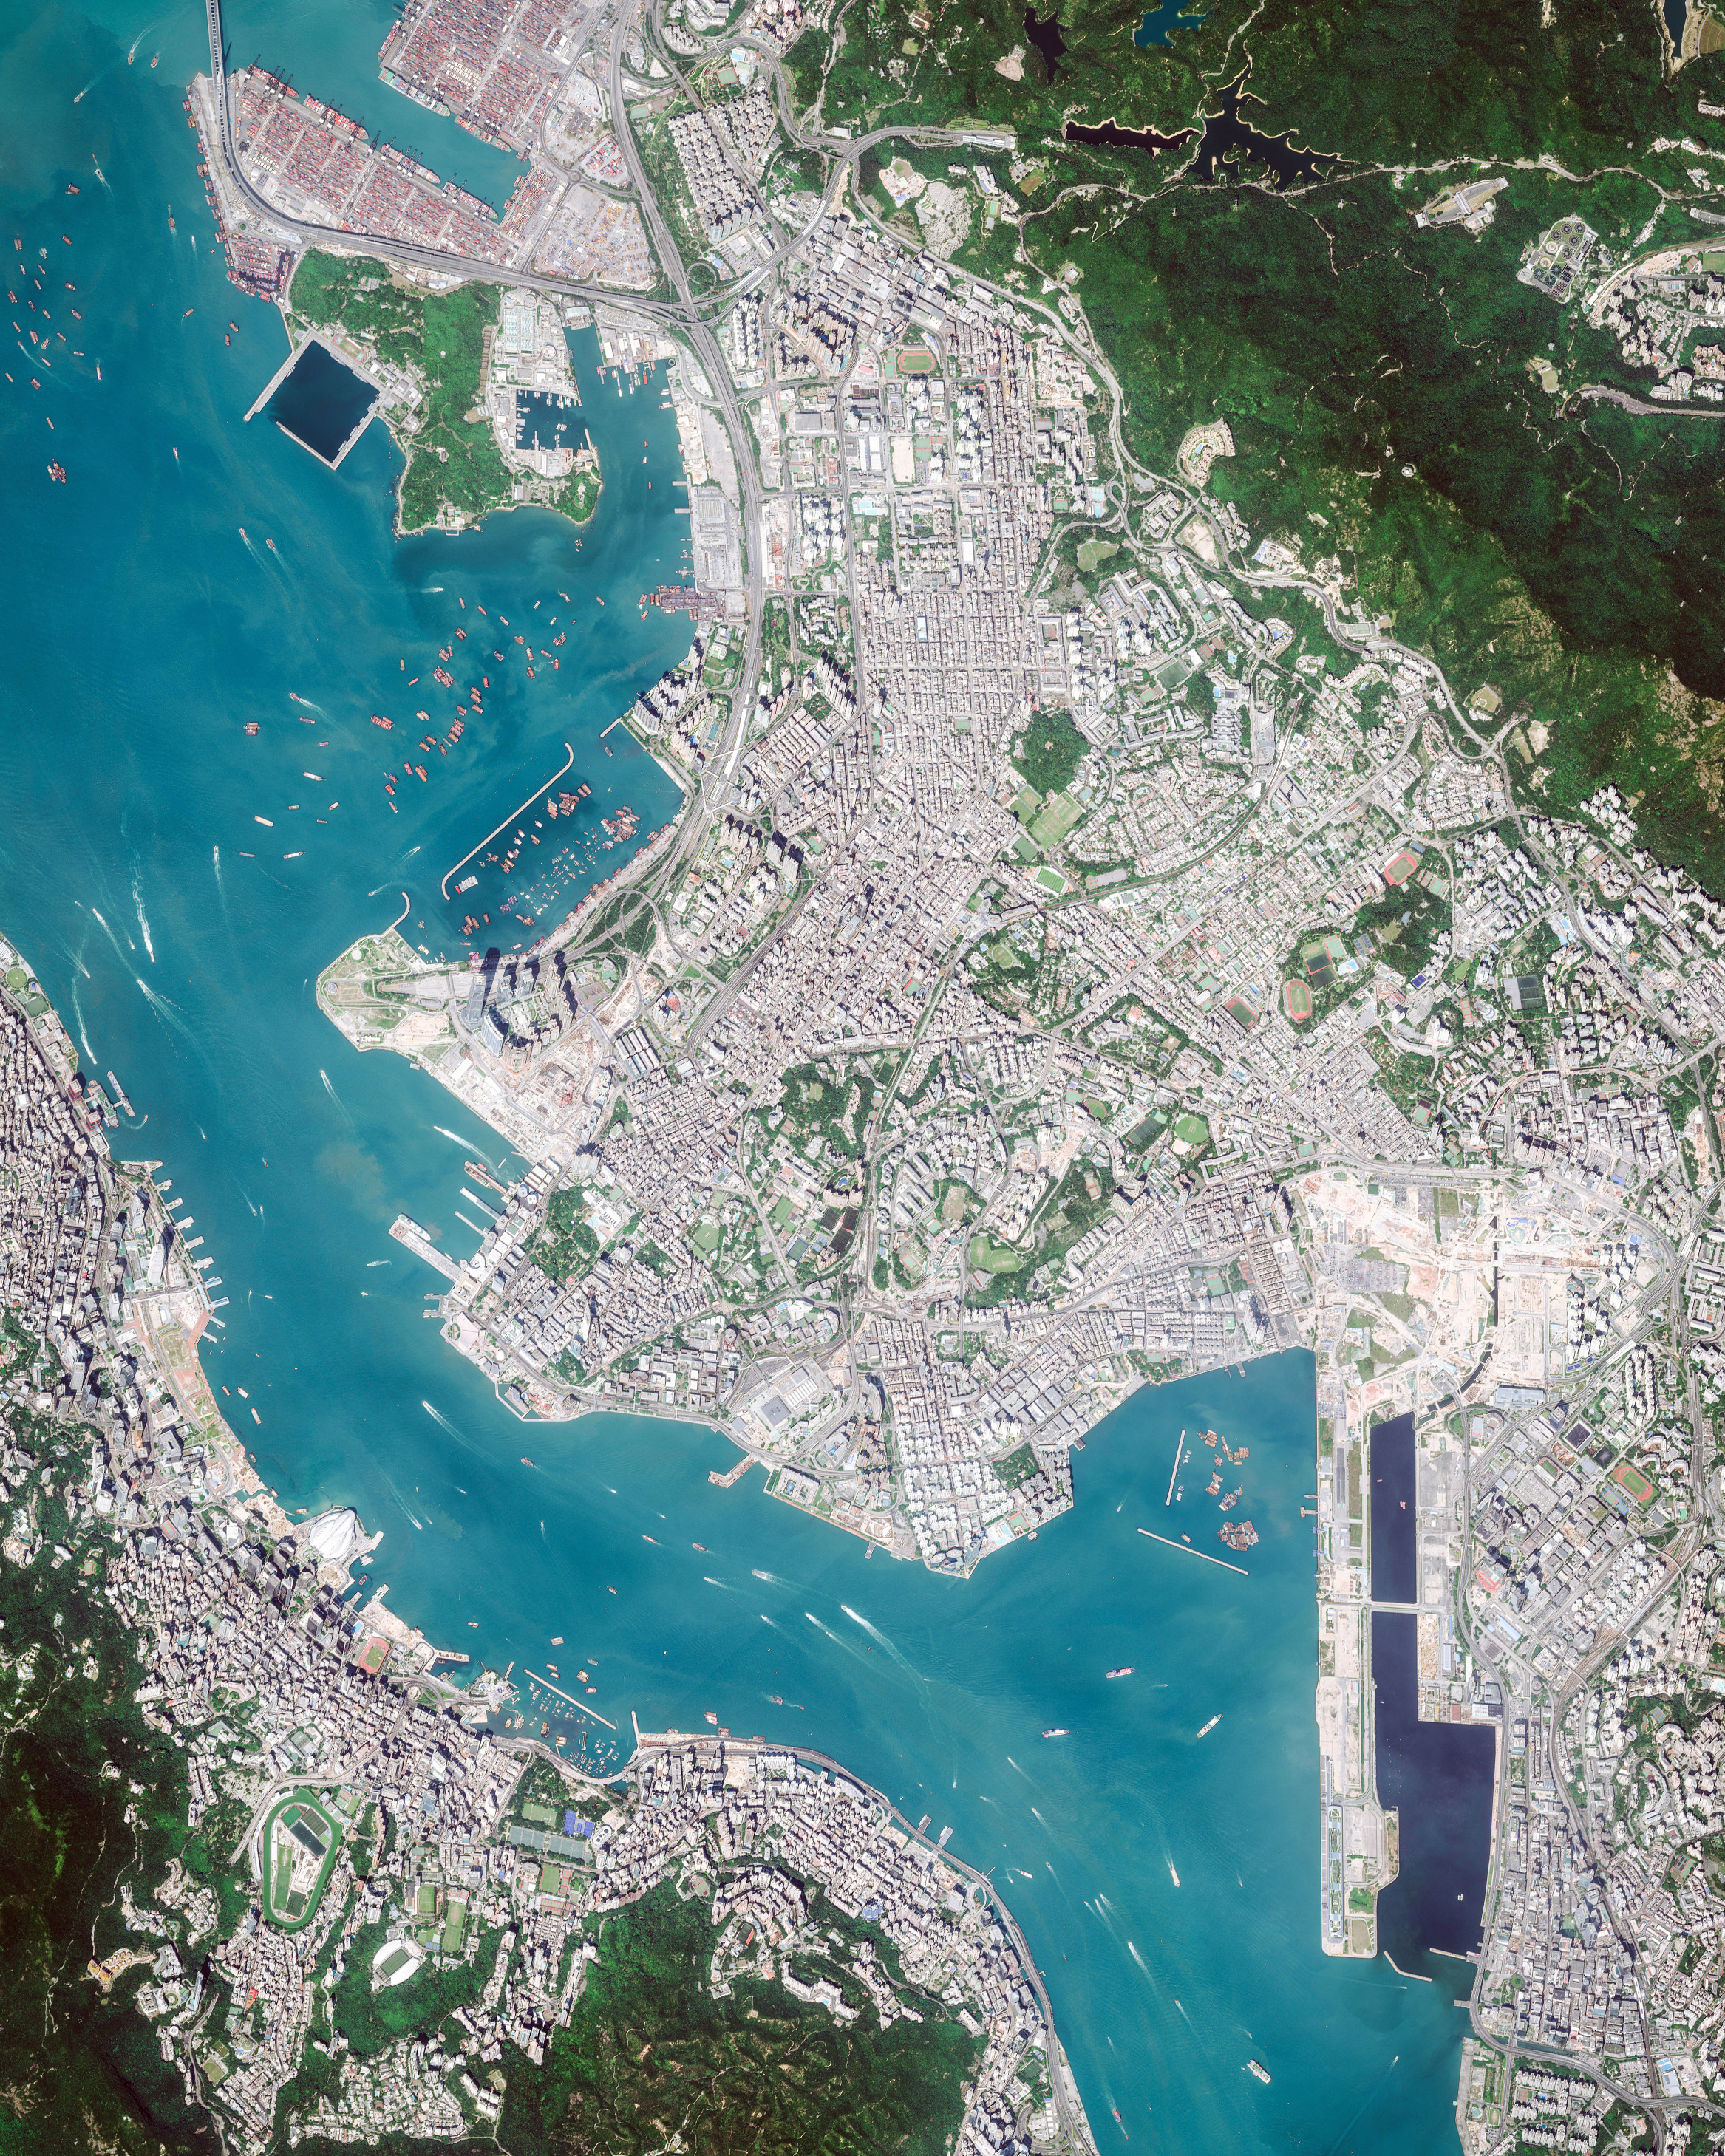 """Hong Kong is an autonomous territory — and former British colony — in southeastern China. Originally a sparsely populated area of farming and fishing villages, it has become one of the world's most significant financial centers and commercial ports. Hong Kong has the largest number of skyscrapers in the world, most of which surround Victoria Harbor and are captured in this Overview.  22°17'15.9""""N, 114°10'25.0""""E  Source imagery: DigitalGlobe"""